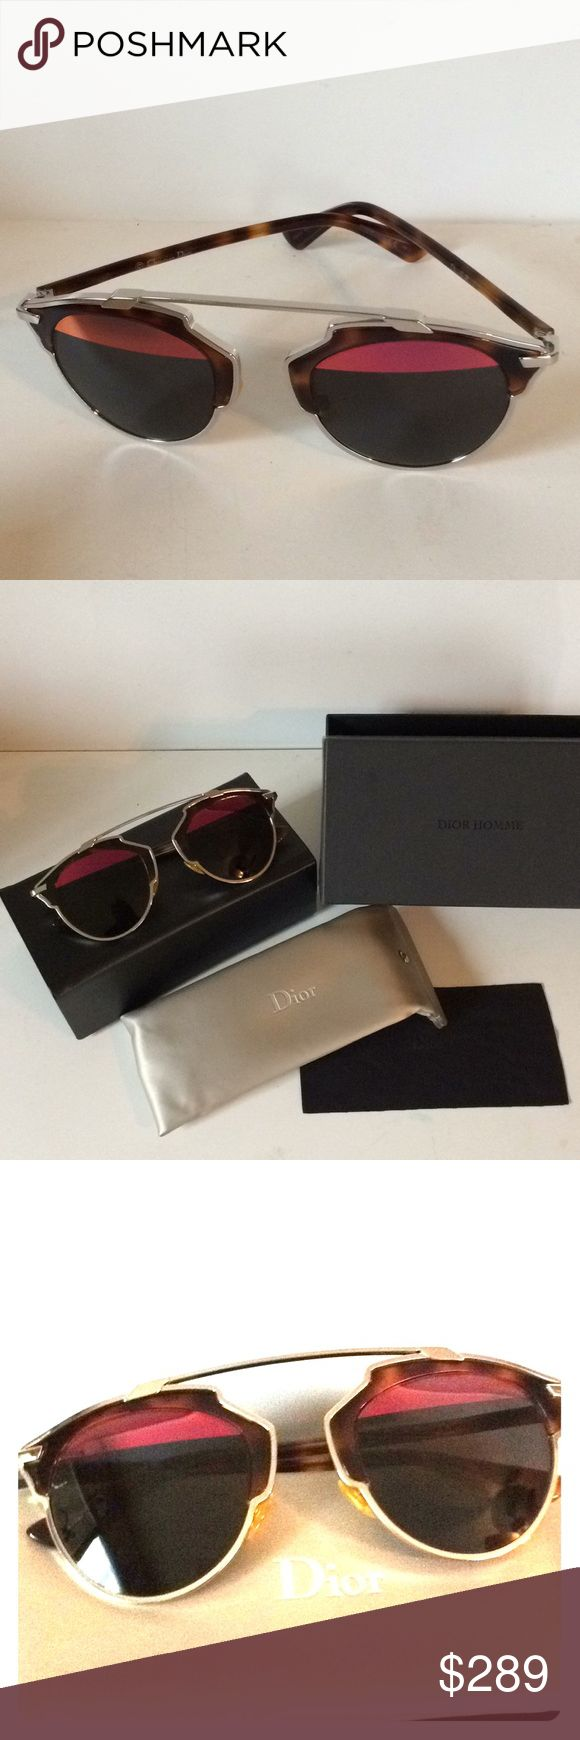 Authentic Dior so real Christian Dior so real sunglasses  Excellent Worn by celebrities everywhere  Ships same day Christian Dior Accessories Sunglasses